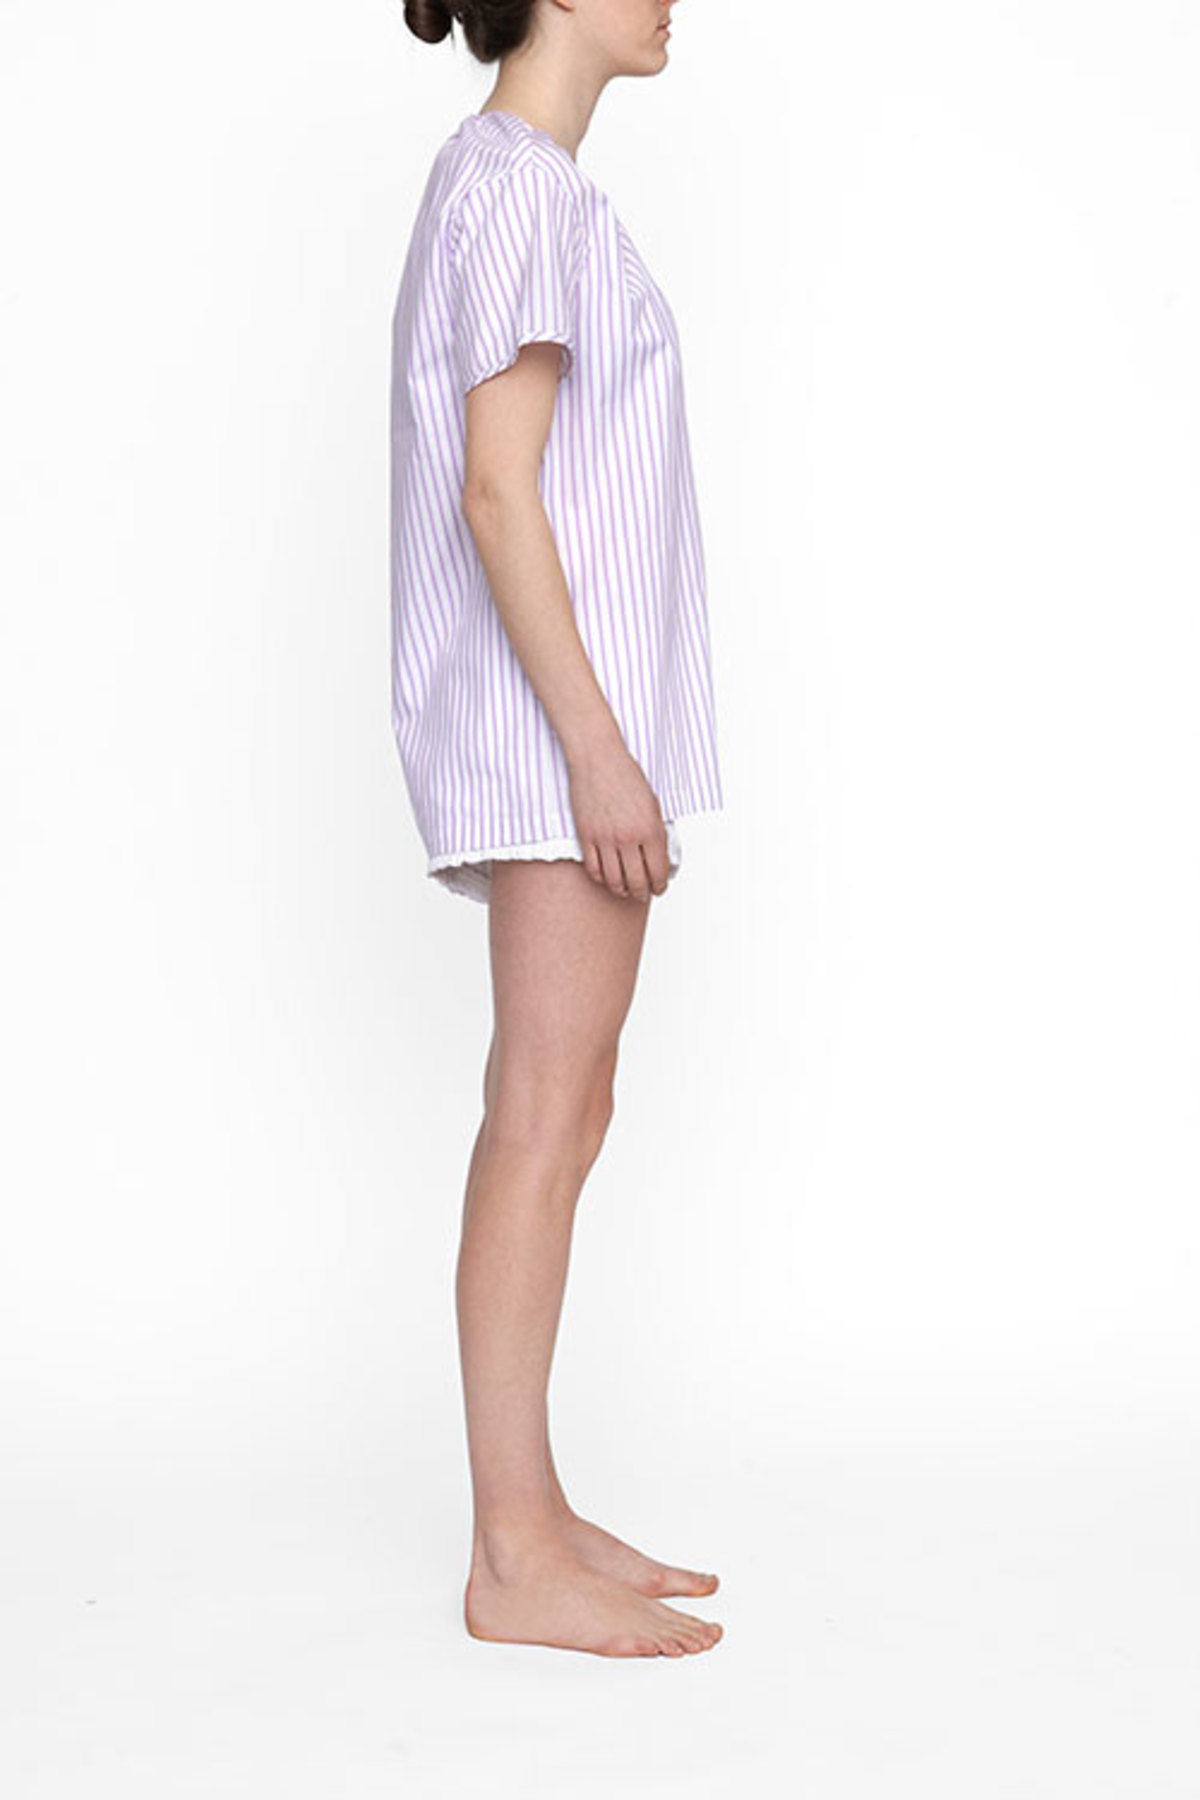 The sleep shirt short sleeve nightshirt raspberry stripe for Sleep shirt short sleeve